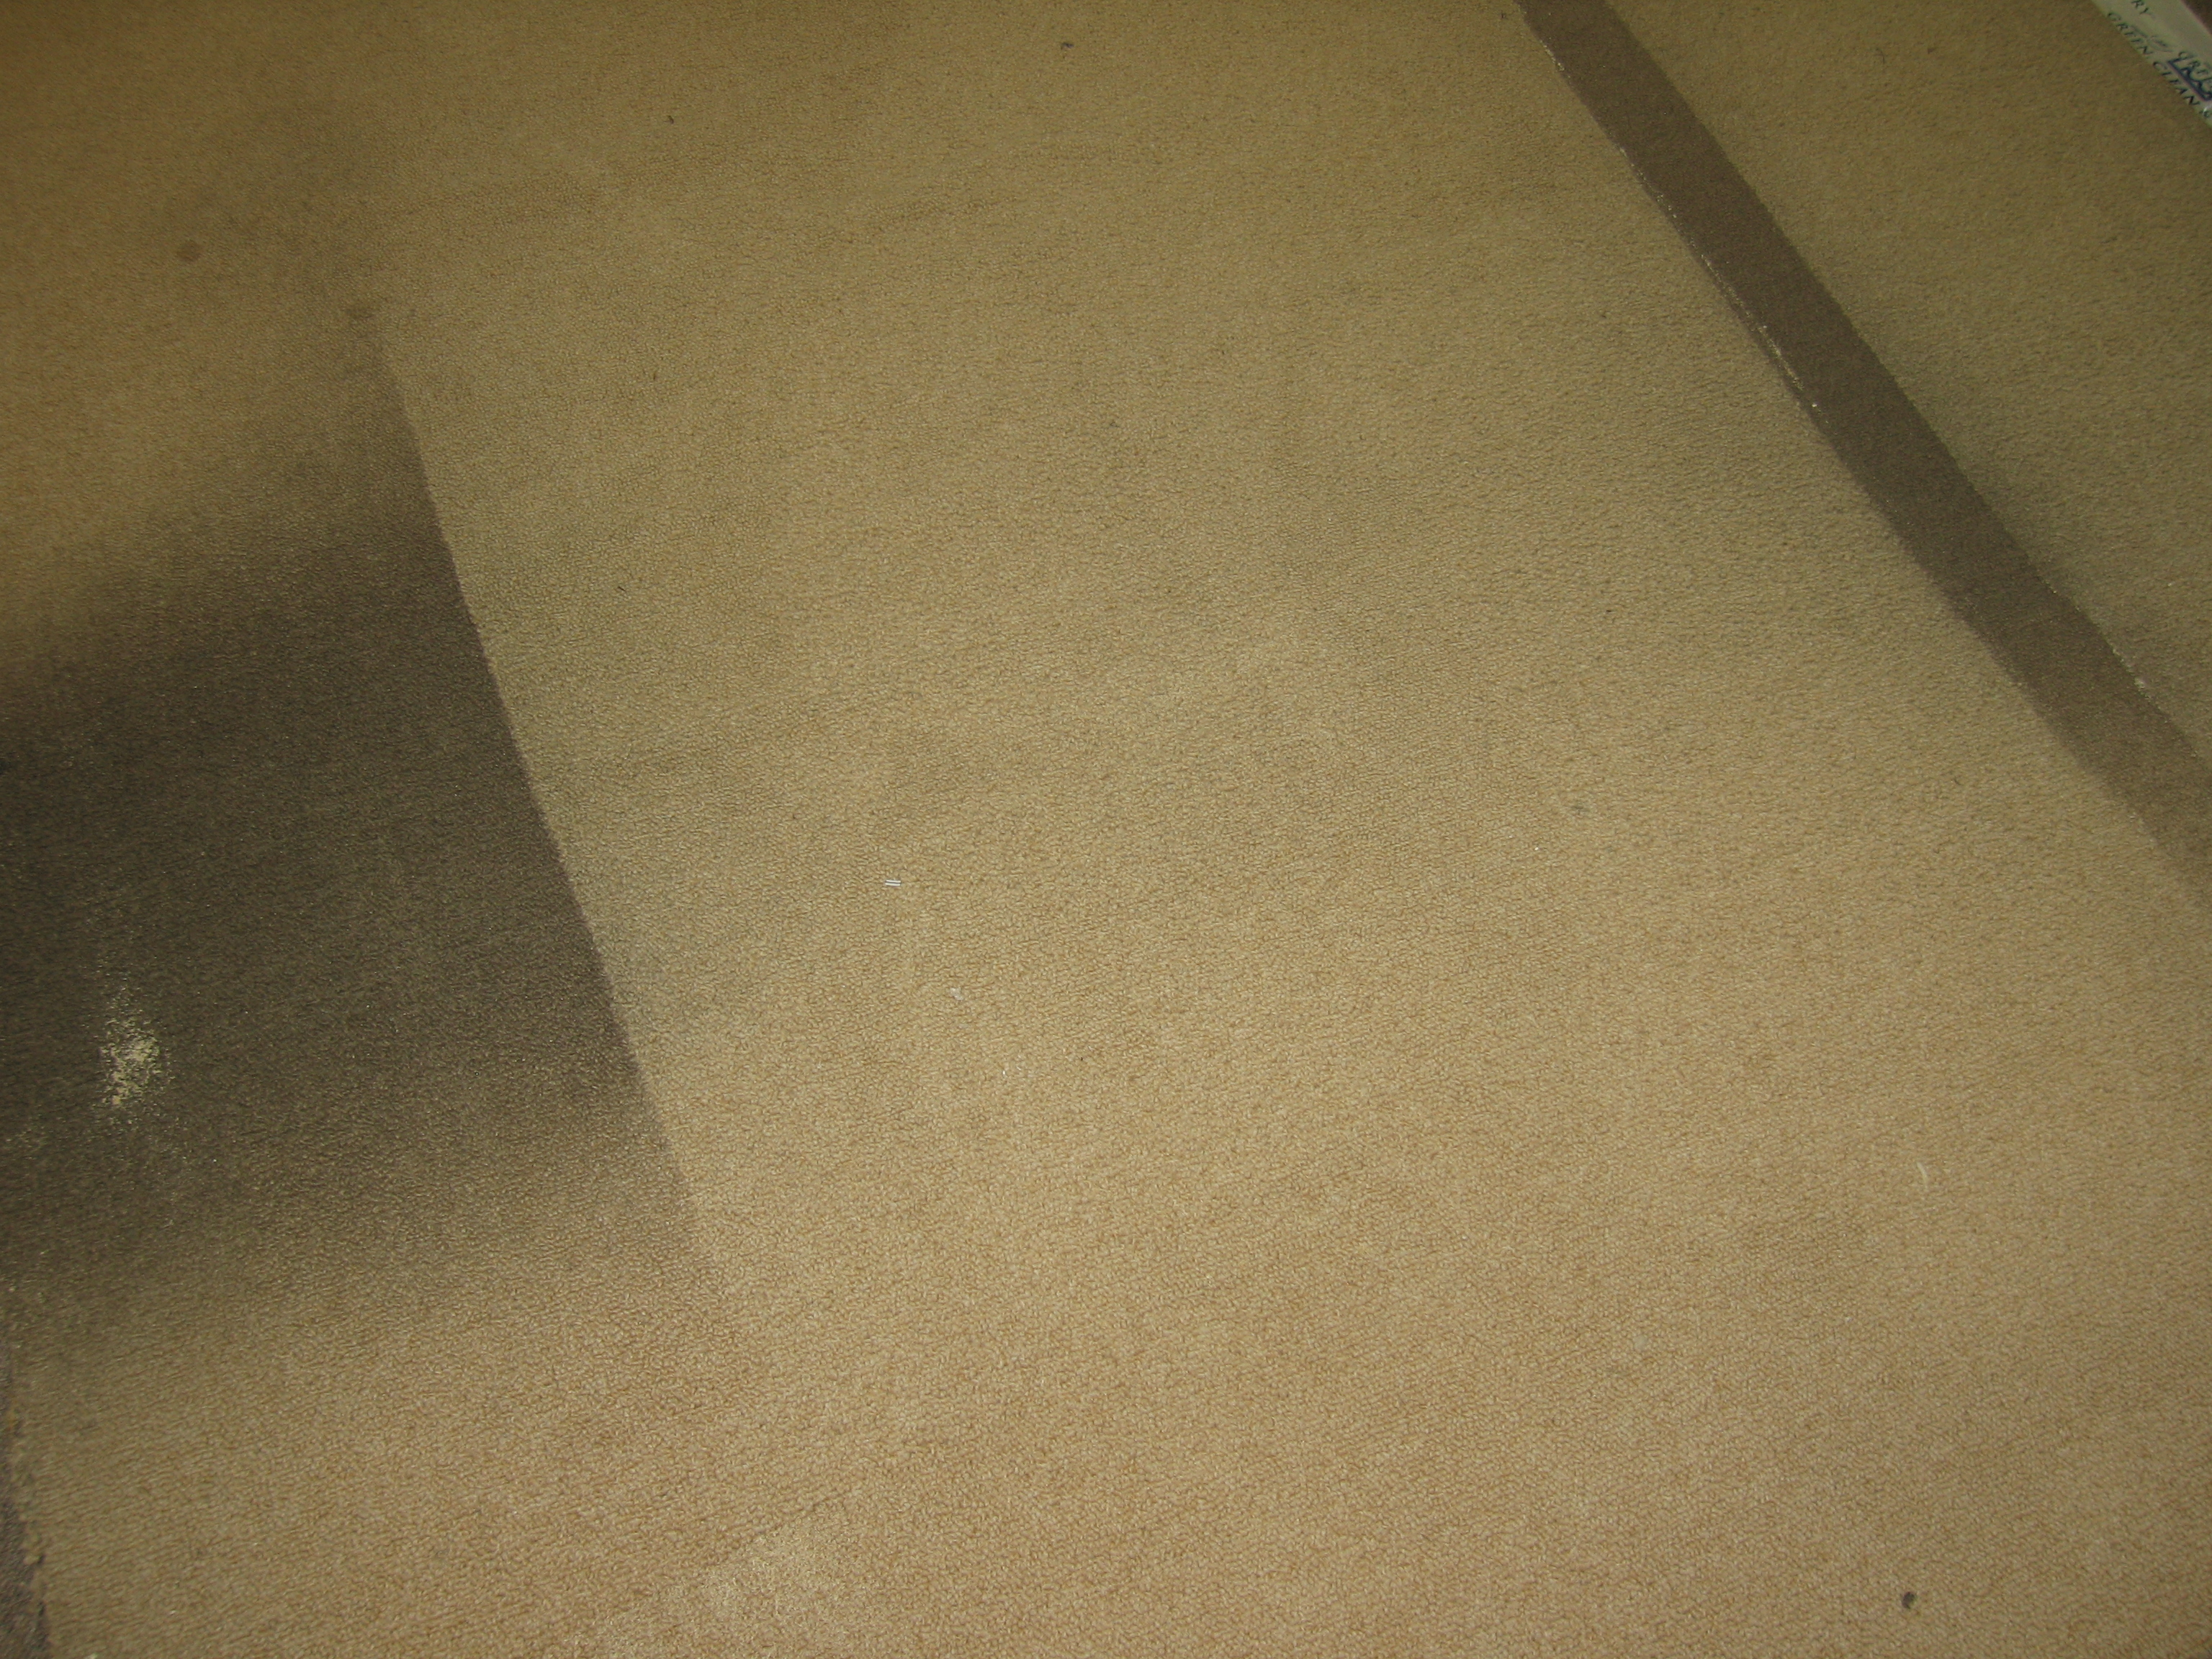 Dry carpet cleaning san antonio